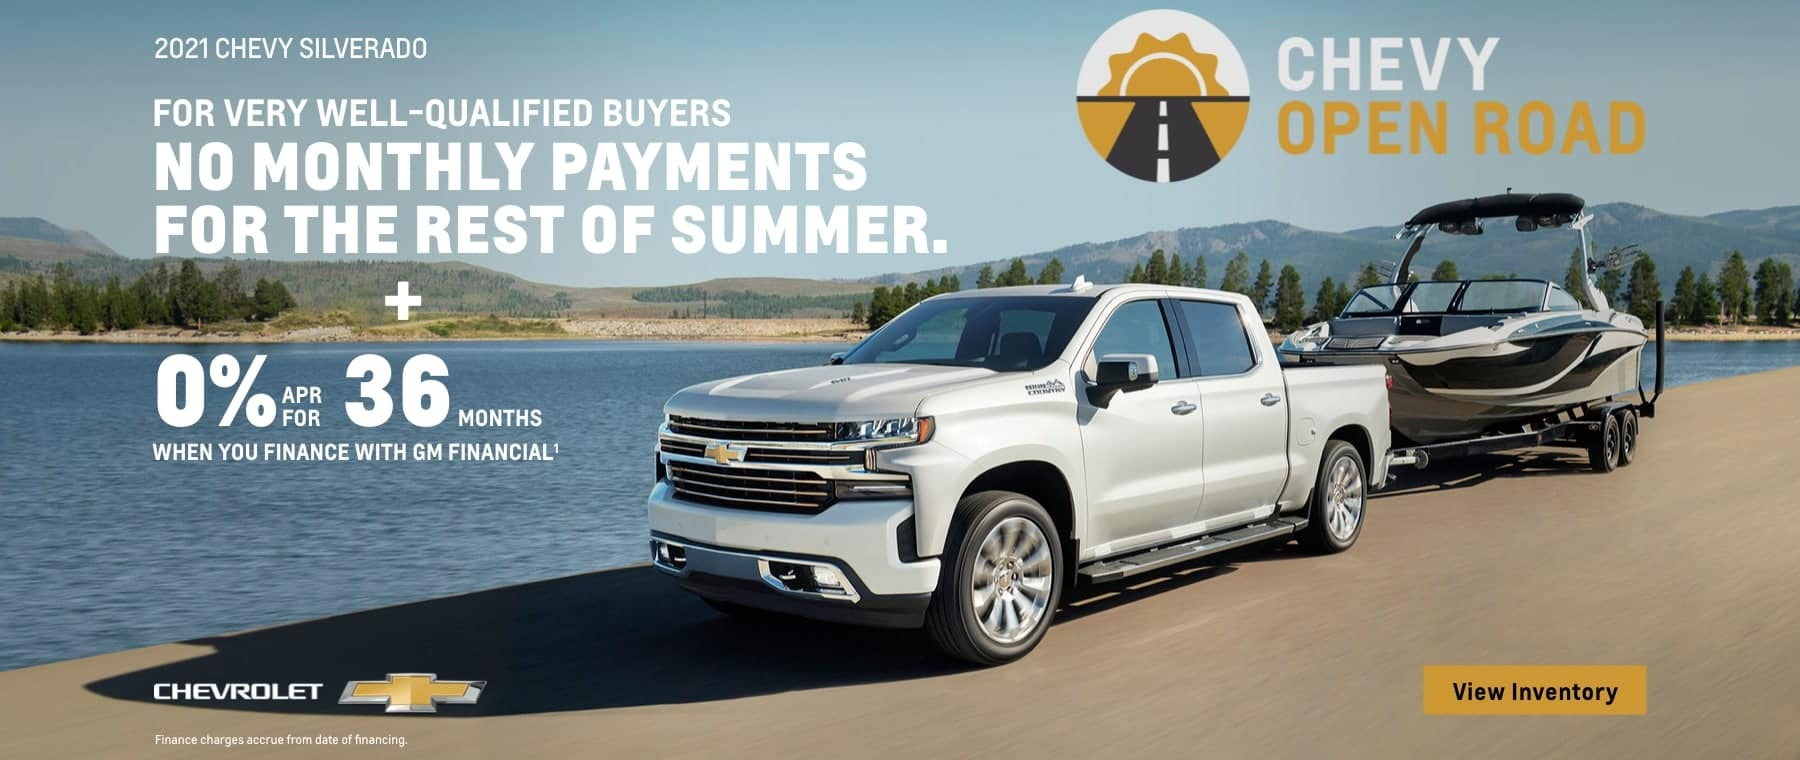 2021 Chevy Silverado 1500. No monthly payments for the rest of summer for very well-qualified buyers. Plus 0% APR for 36 months when you finance with GM Financial.